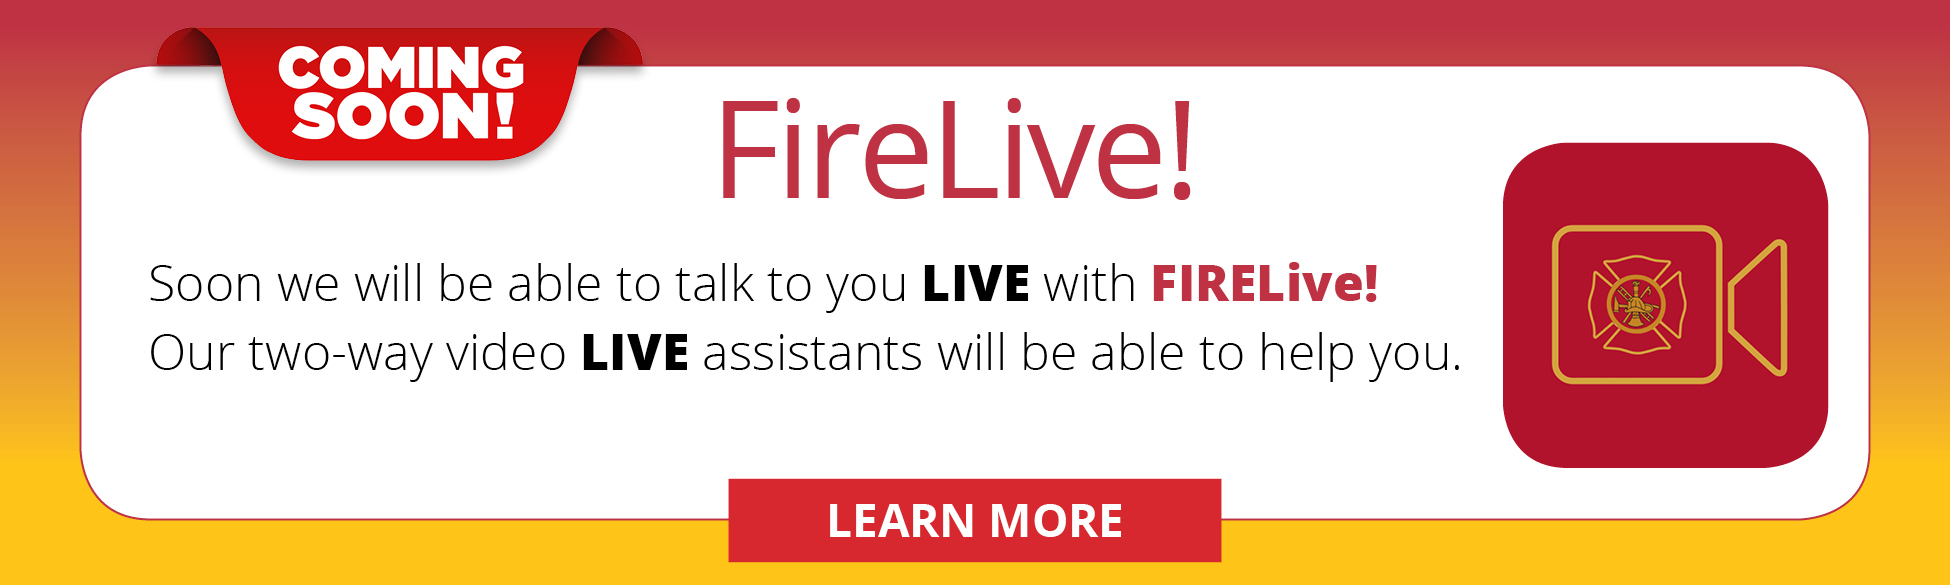 Coming soon! FireLive! Soon we will be able to talk to you LIVE with FIRELive! Our two-way video LIVE assistants will be able to help you. LEARN MORE